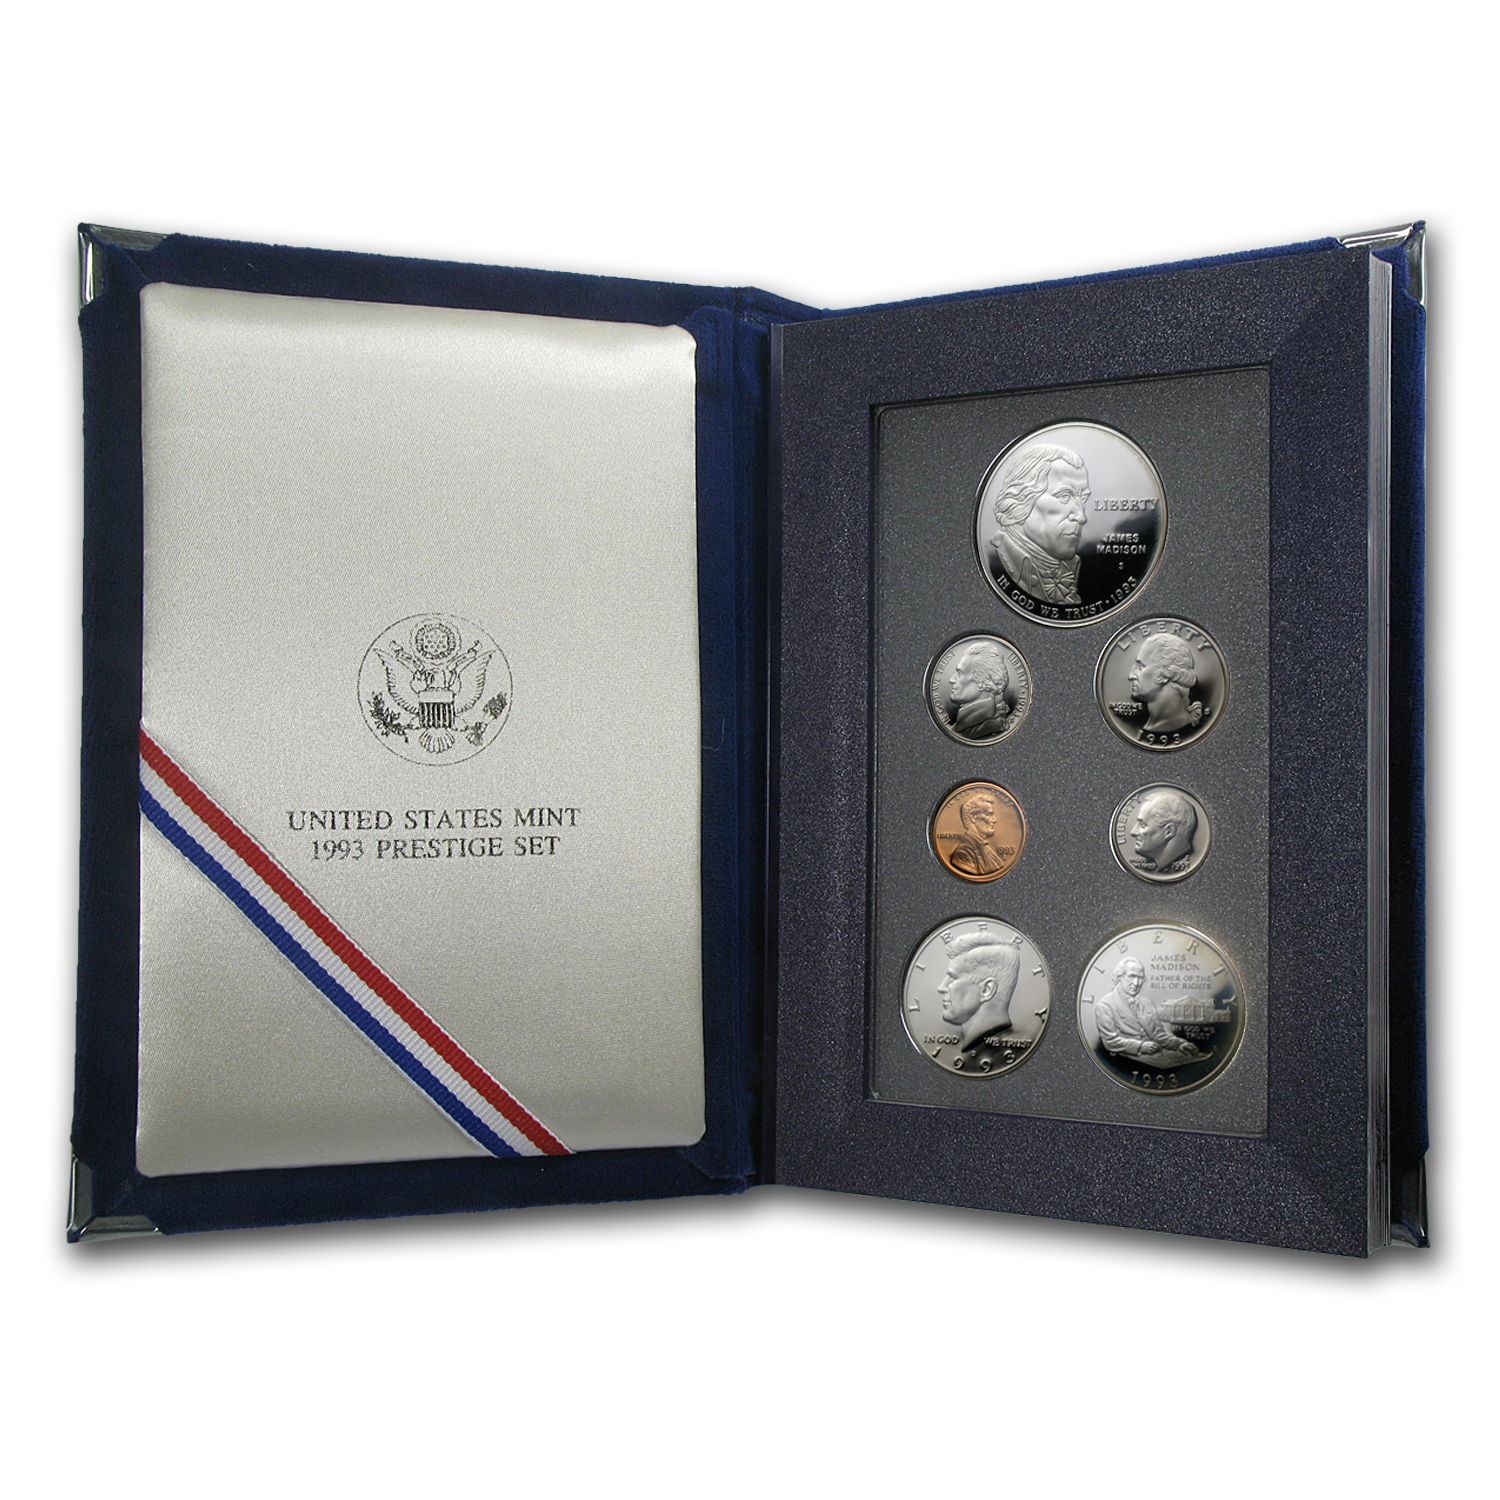 1993 U.S. Mint Prestige Set